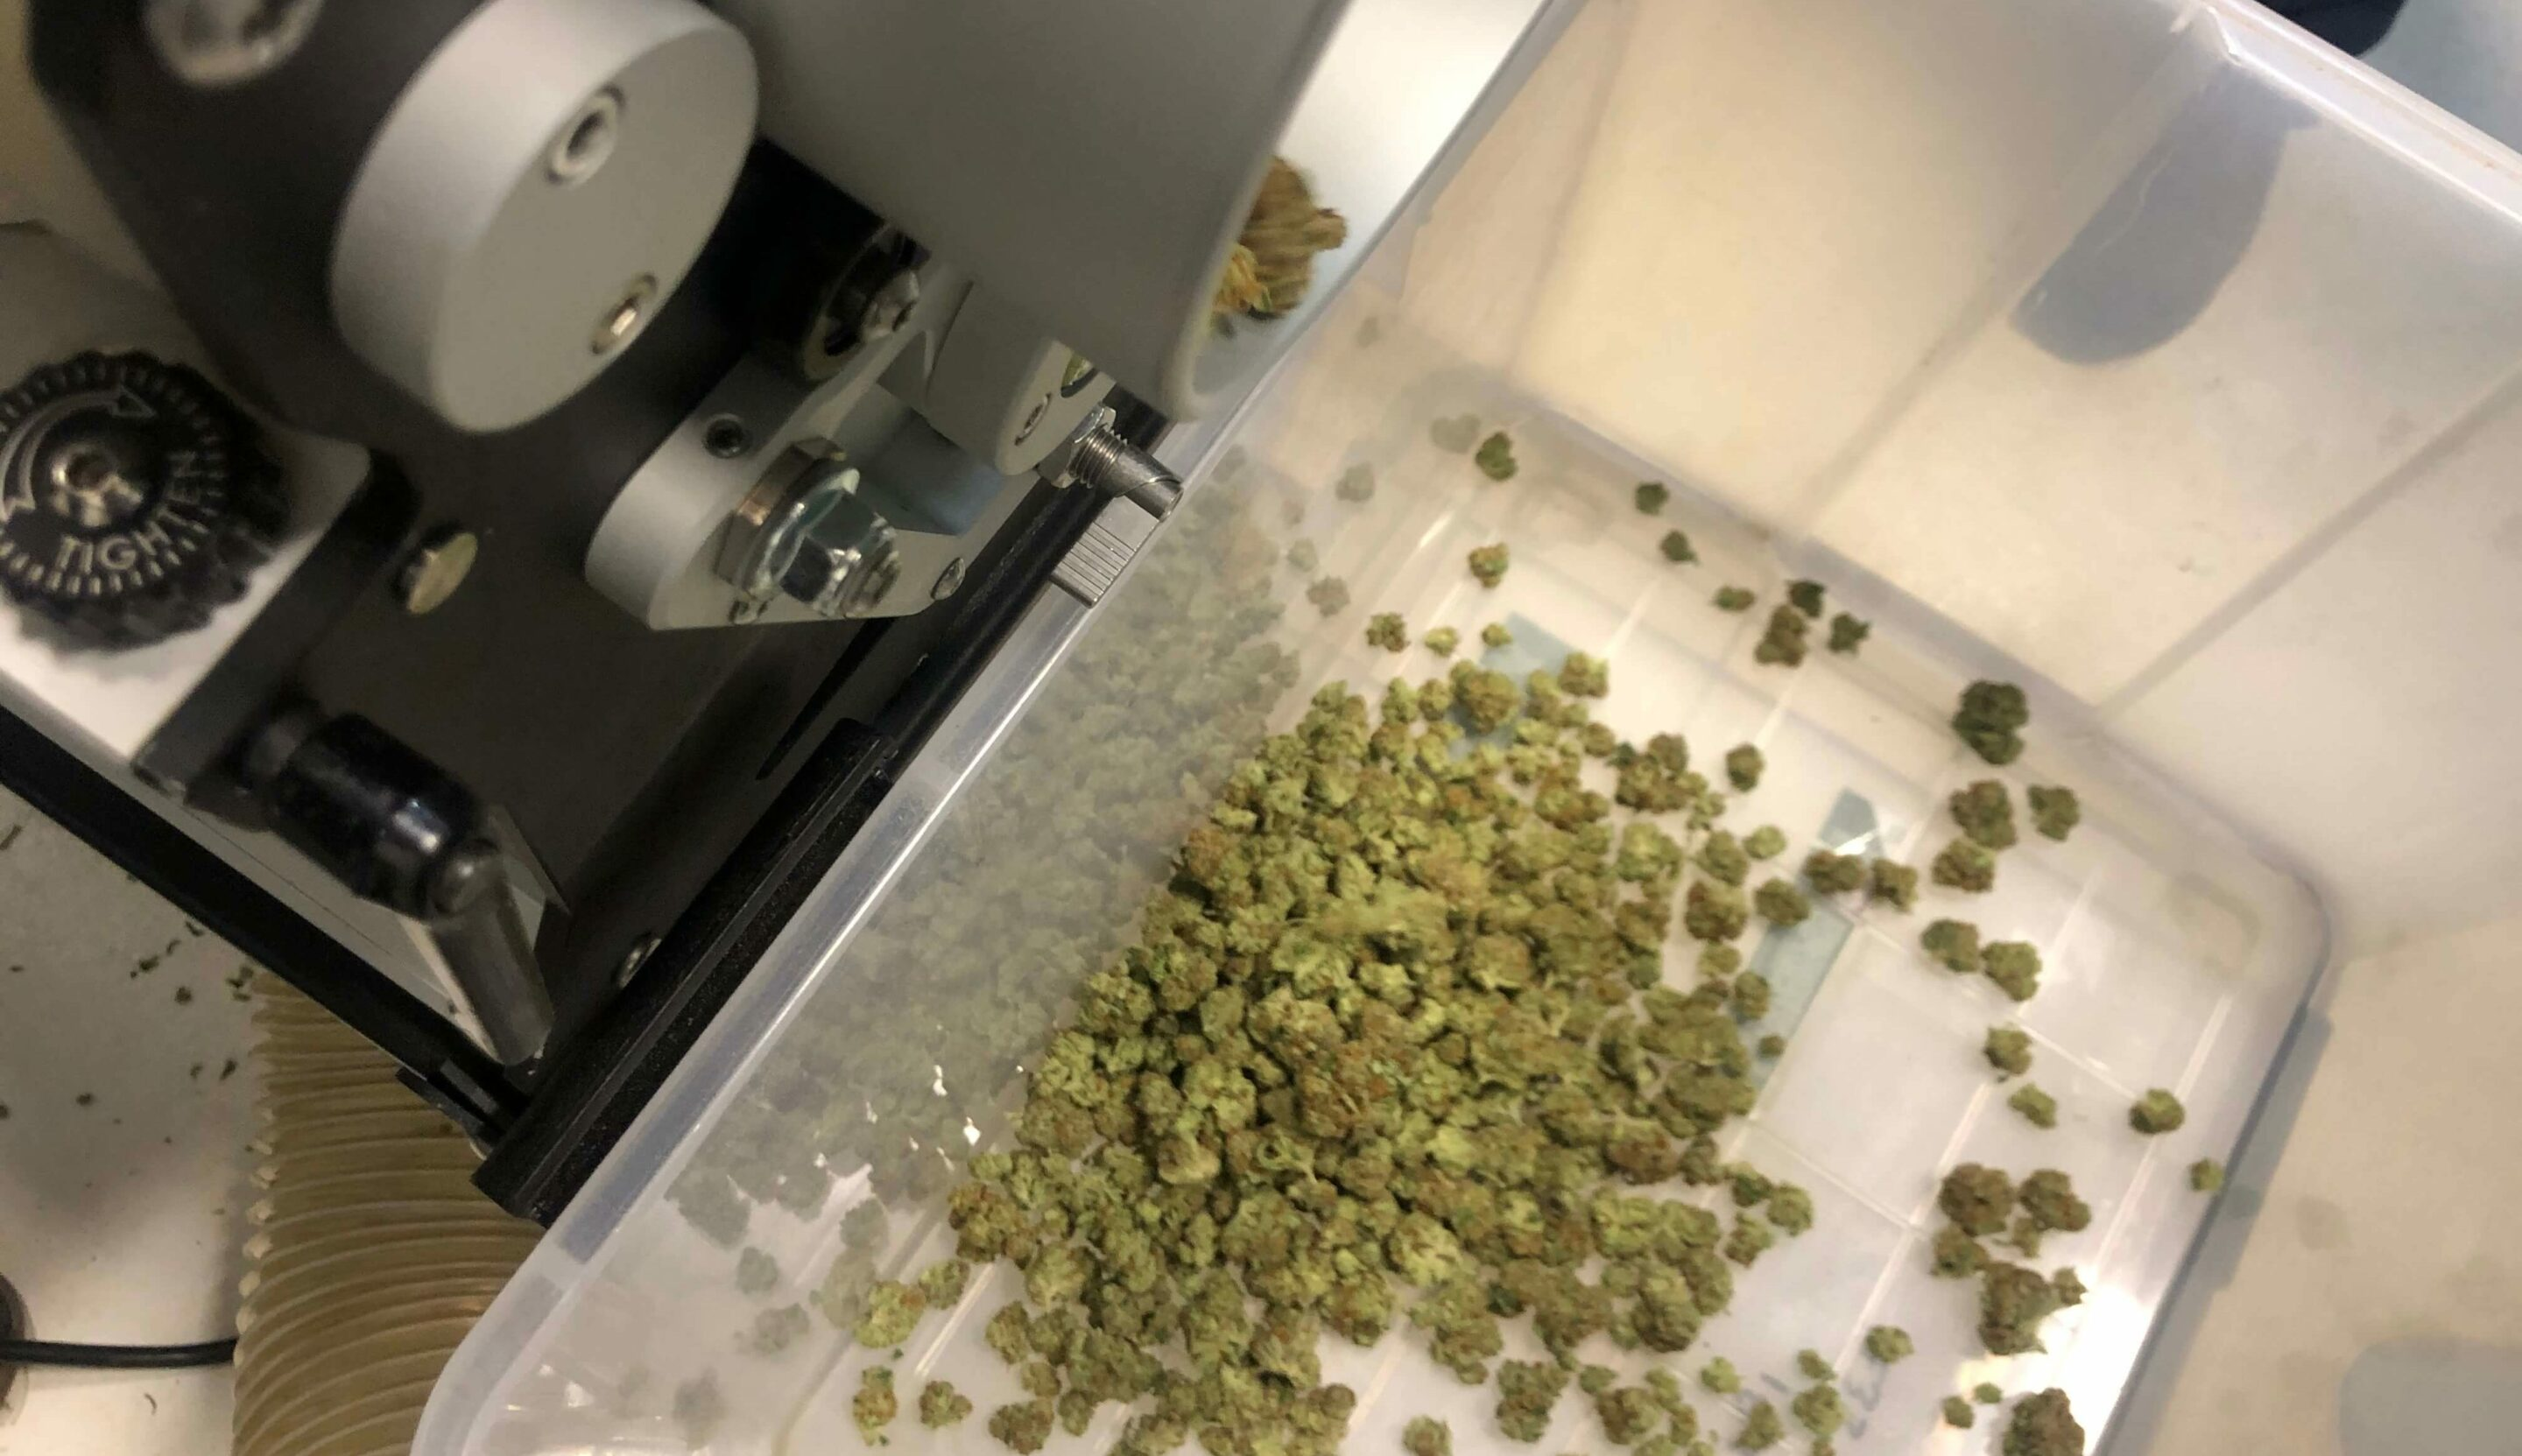 wet vs dry trimming cannabis with machines or by hand